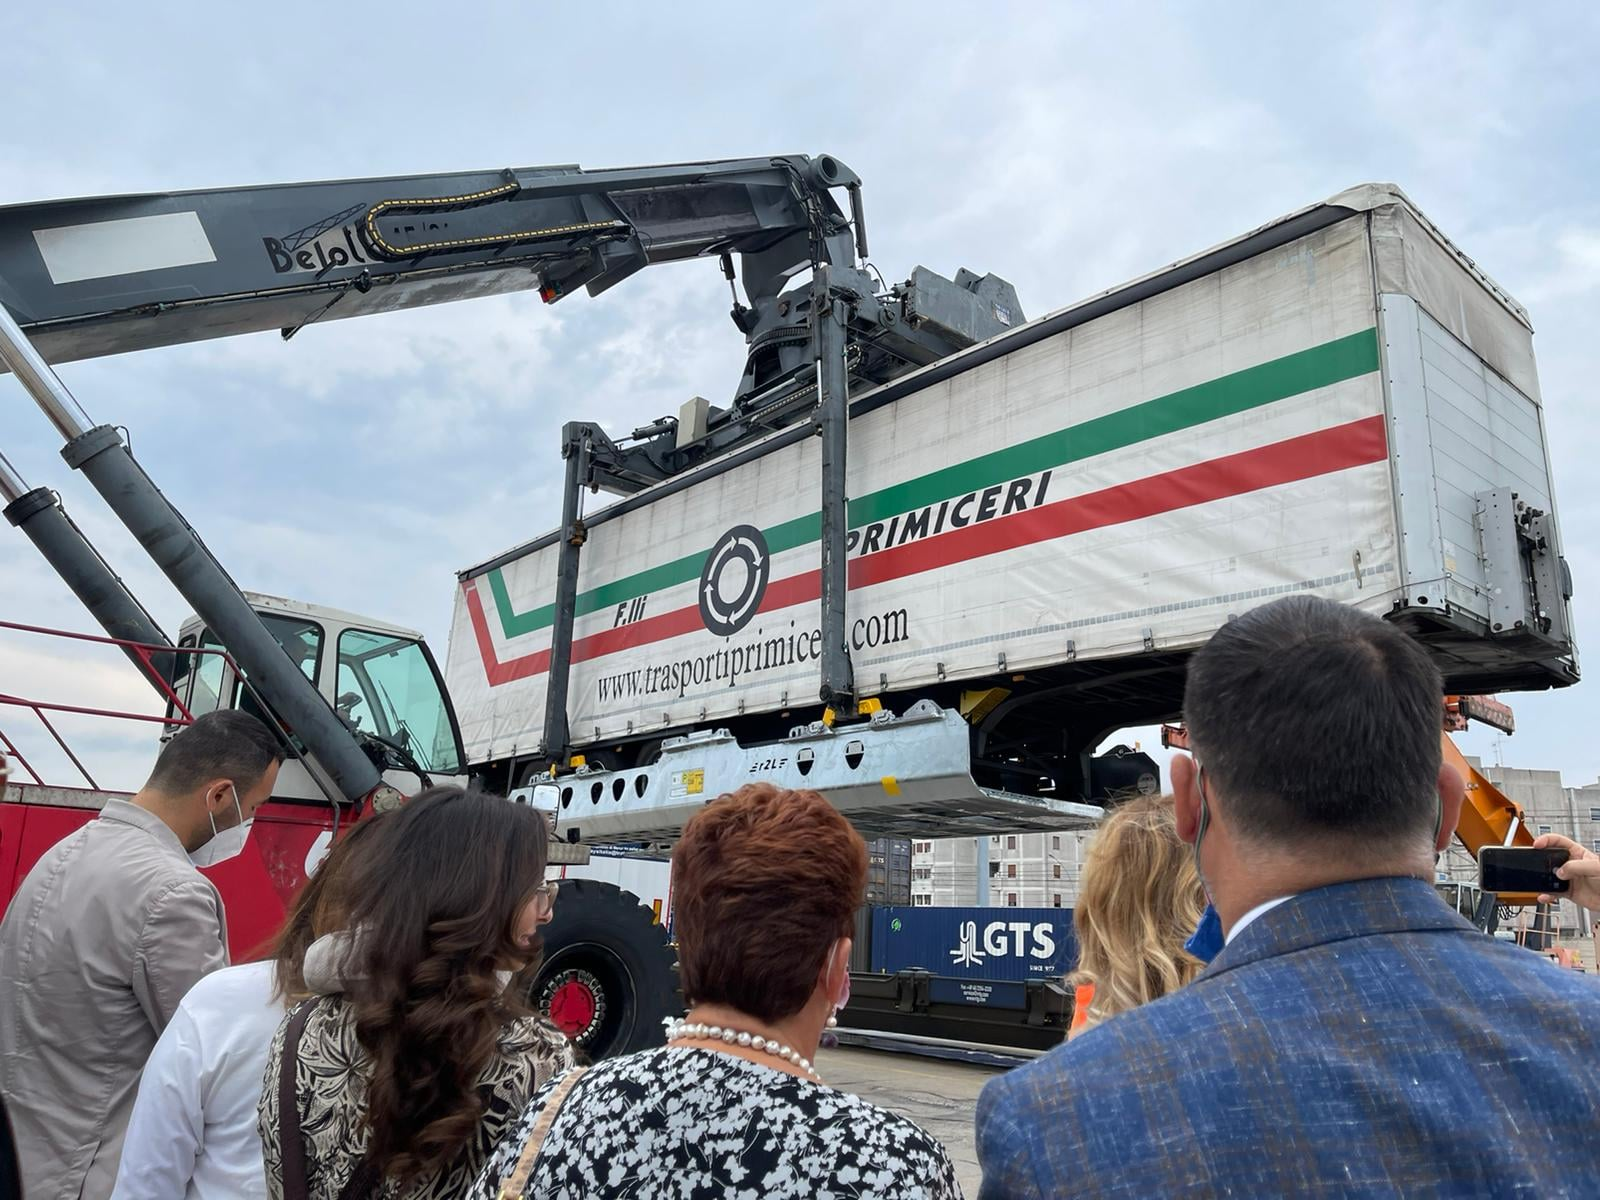 Italy opens its 1st intermodal terminal that can transport non-craneable trailers